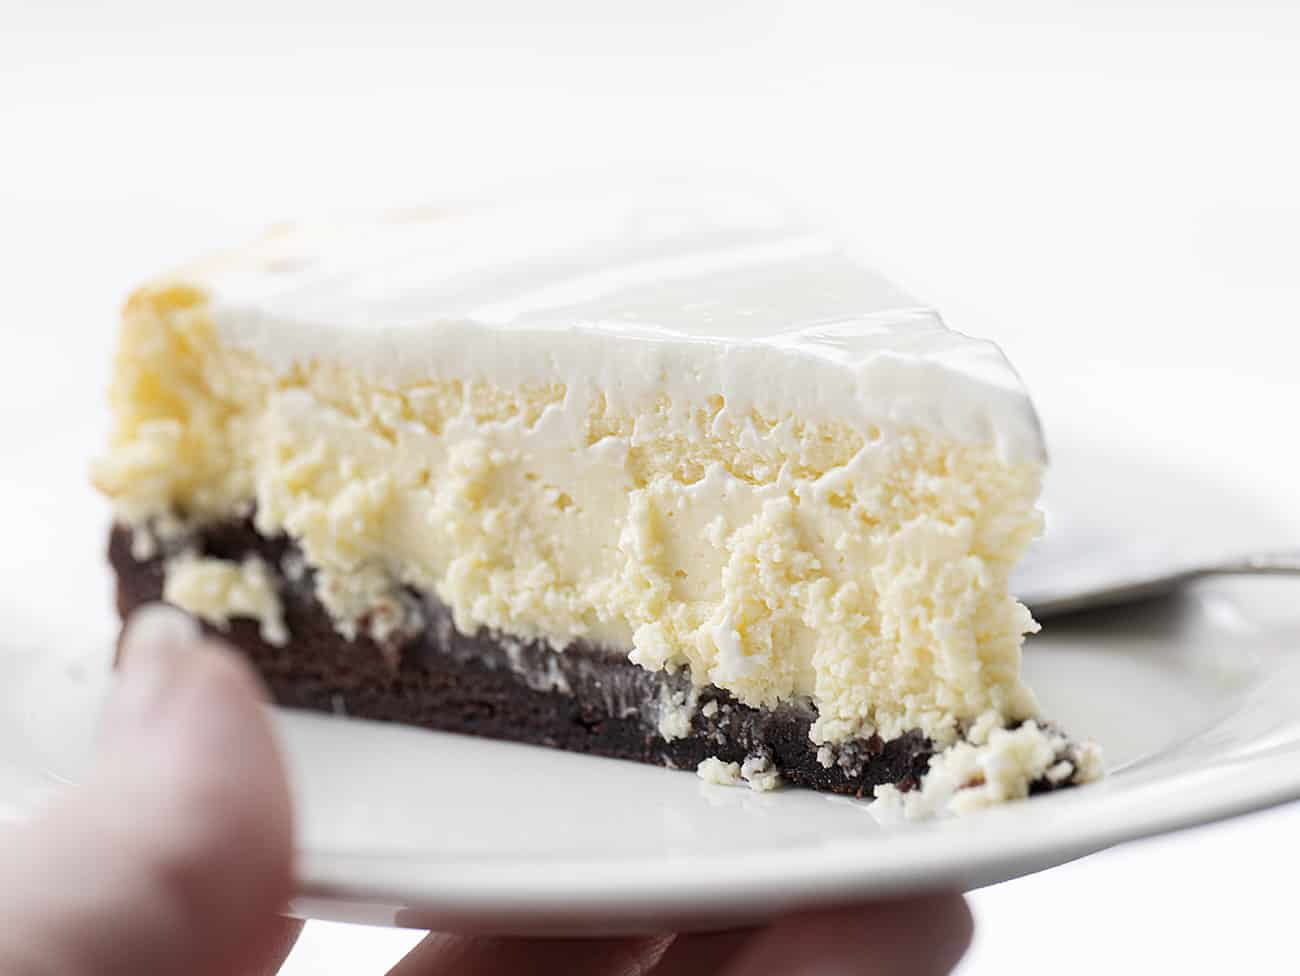 Hand Holding White Plate with Brownie Bottom Cheesecake Recipe with Sour Cream Frosting Topping and Fork Resting Next to It